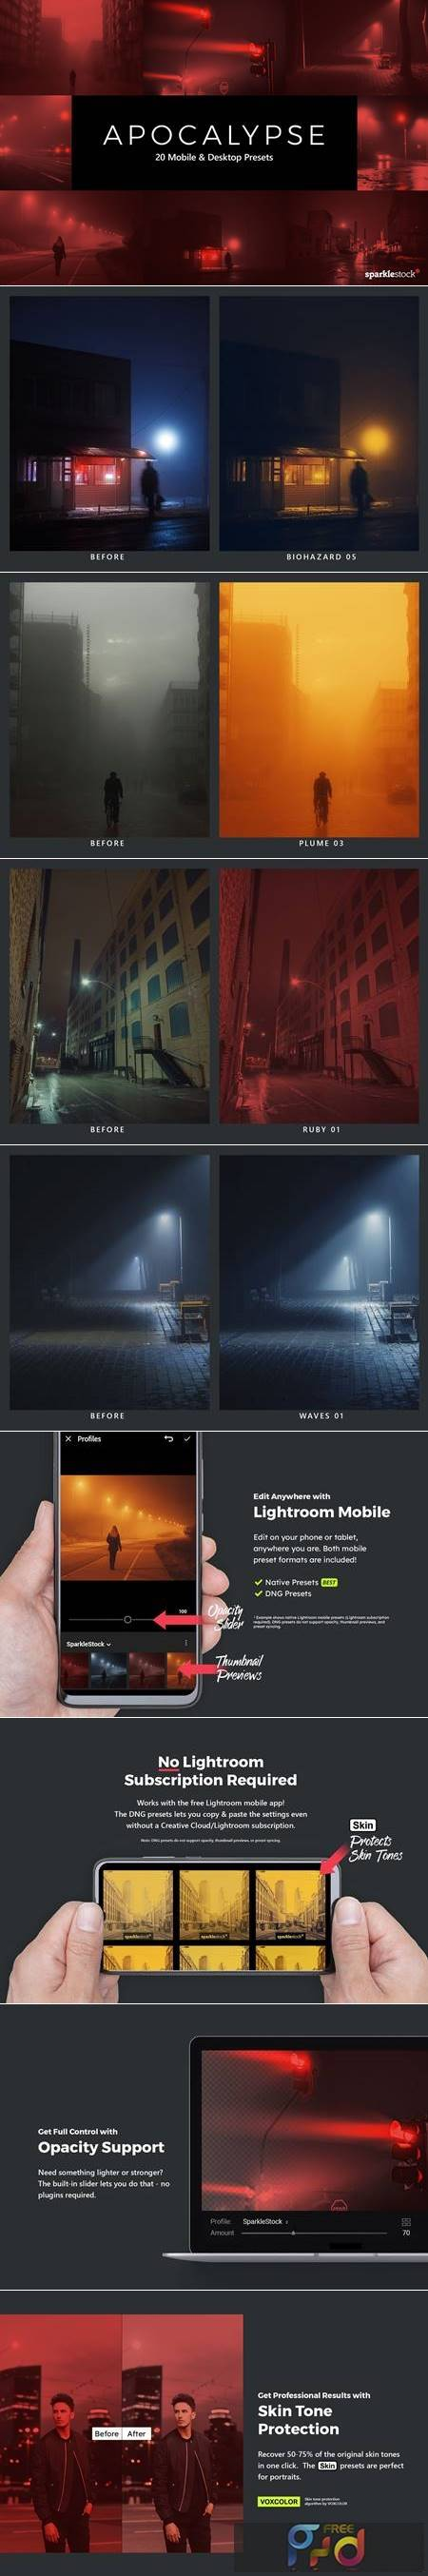 20 Apocalypse LR Presets and LUTs 5436510 1